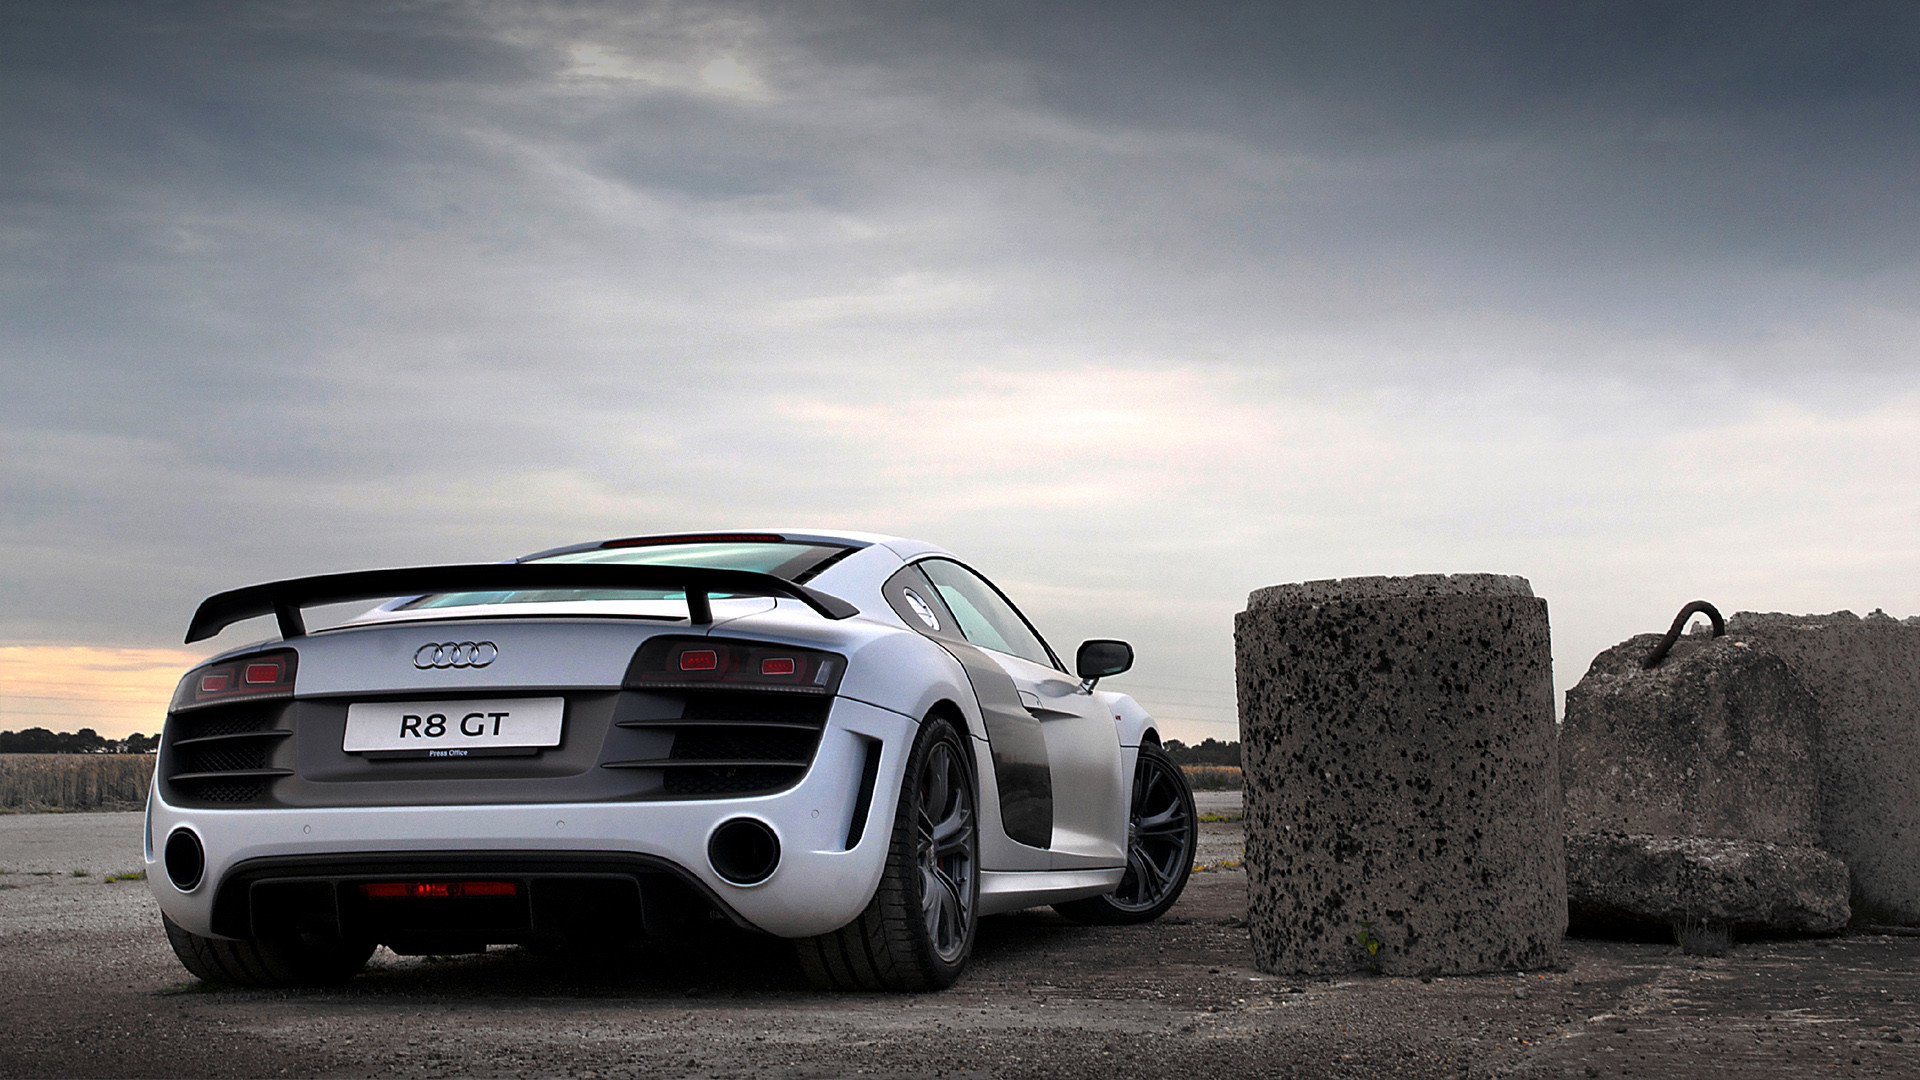 Cars Audi Roads R8 White V10 Wallpaper Allwallpaper In: Audi R8 Wallpaper 1920x1080 (85+ Images